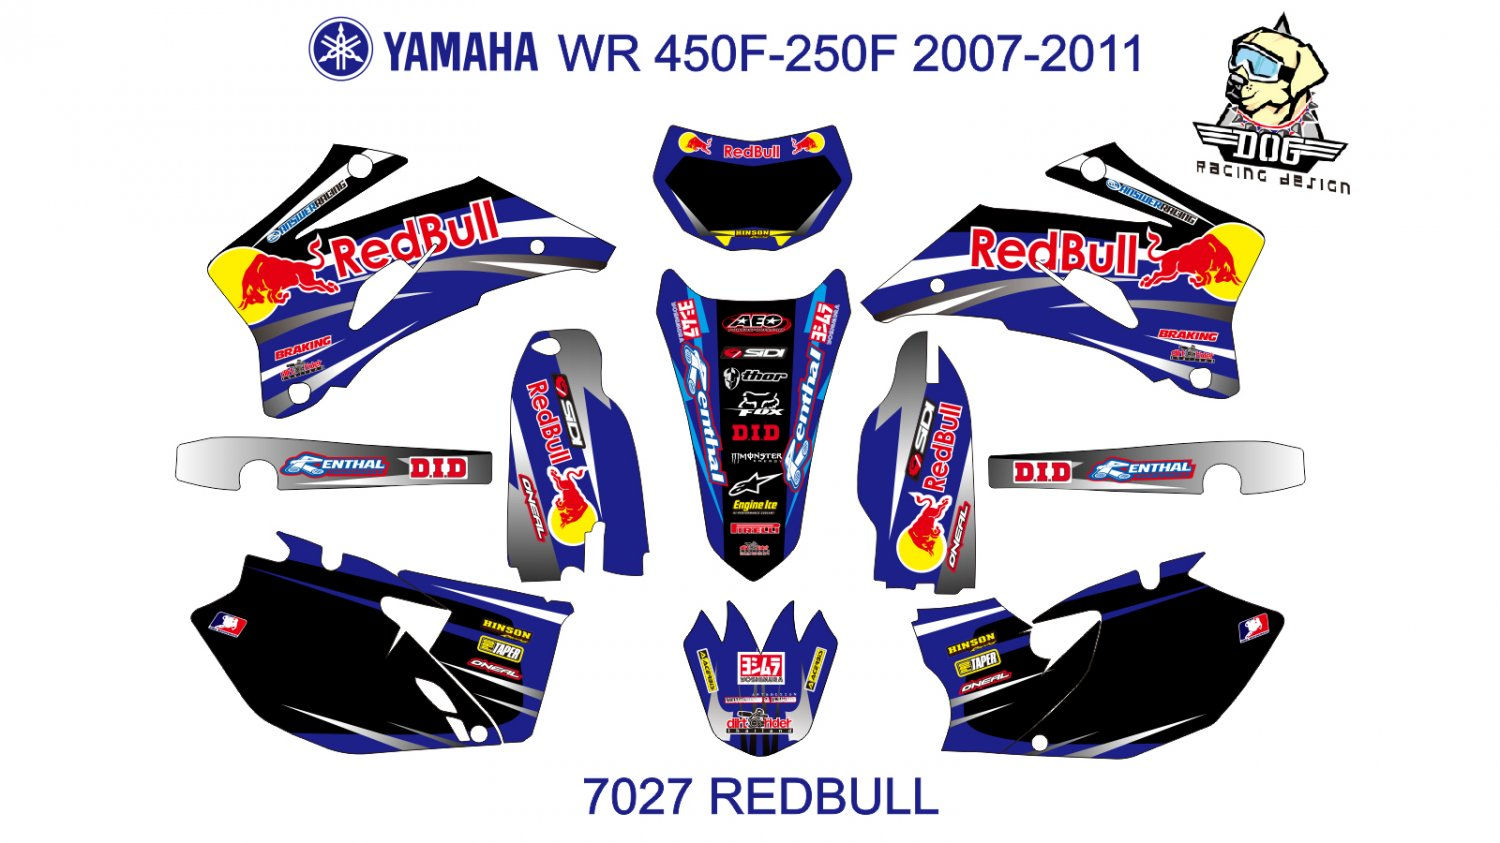 YAMAHA WR450F-250F 2007-2011 GRAPHIC DECAL KIT CODE.7027